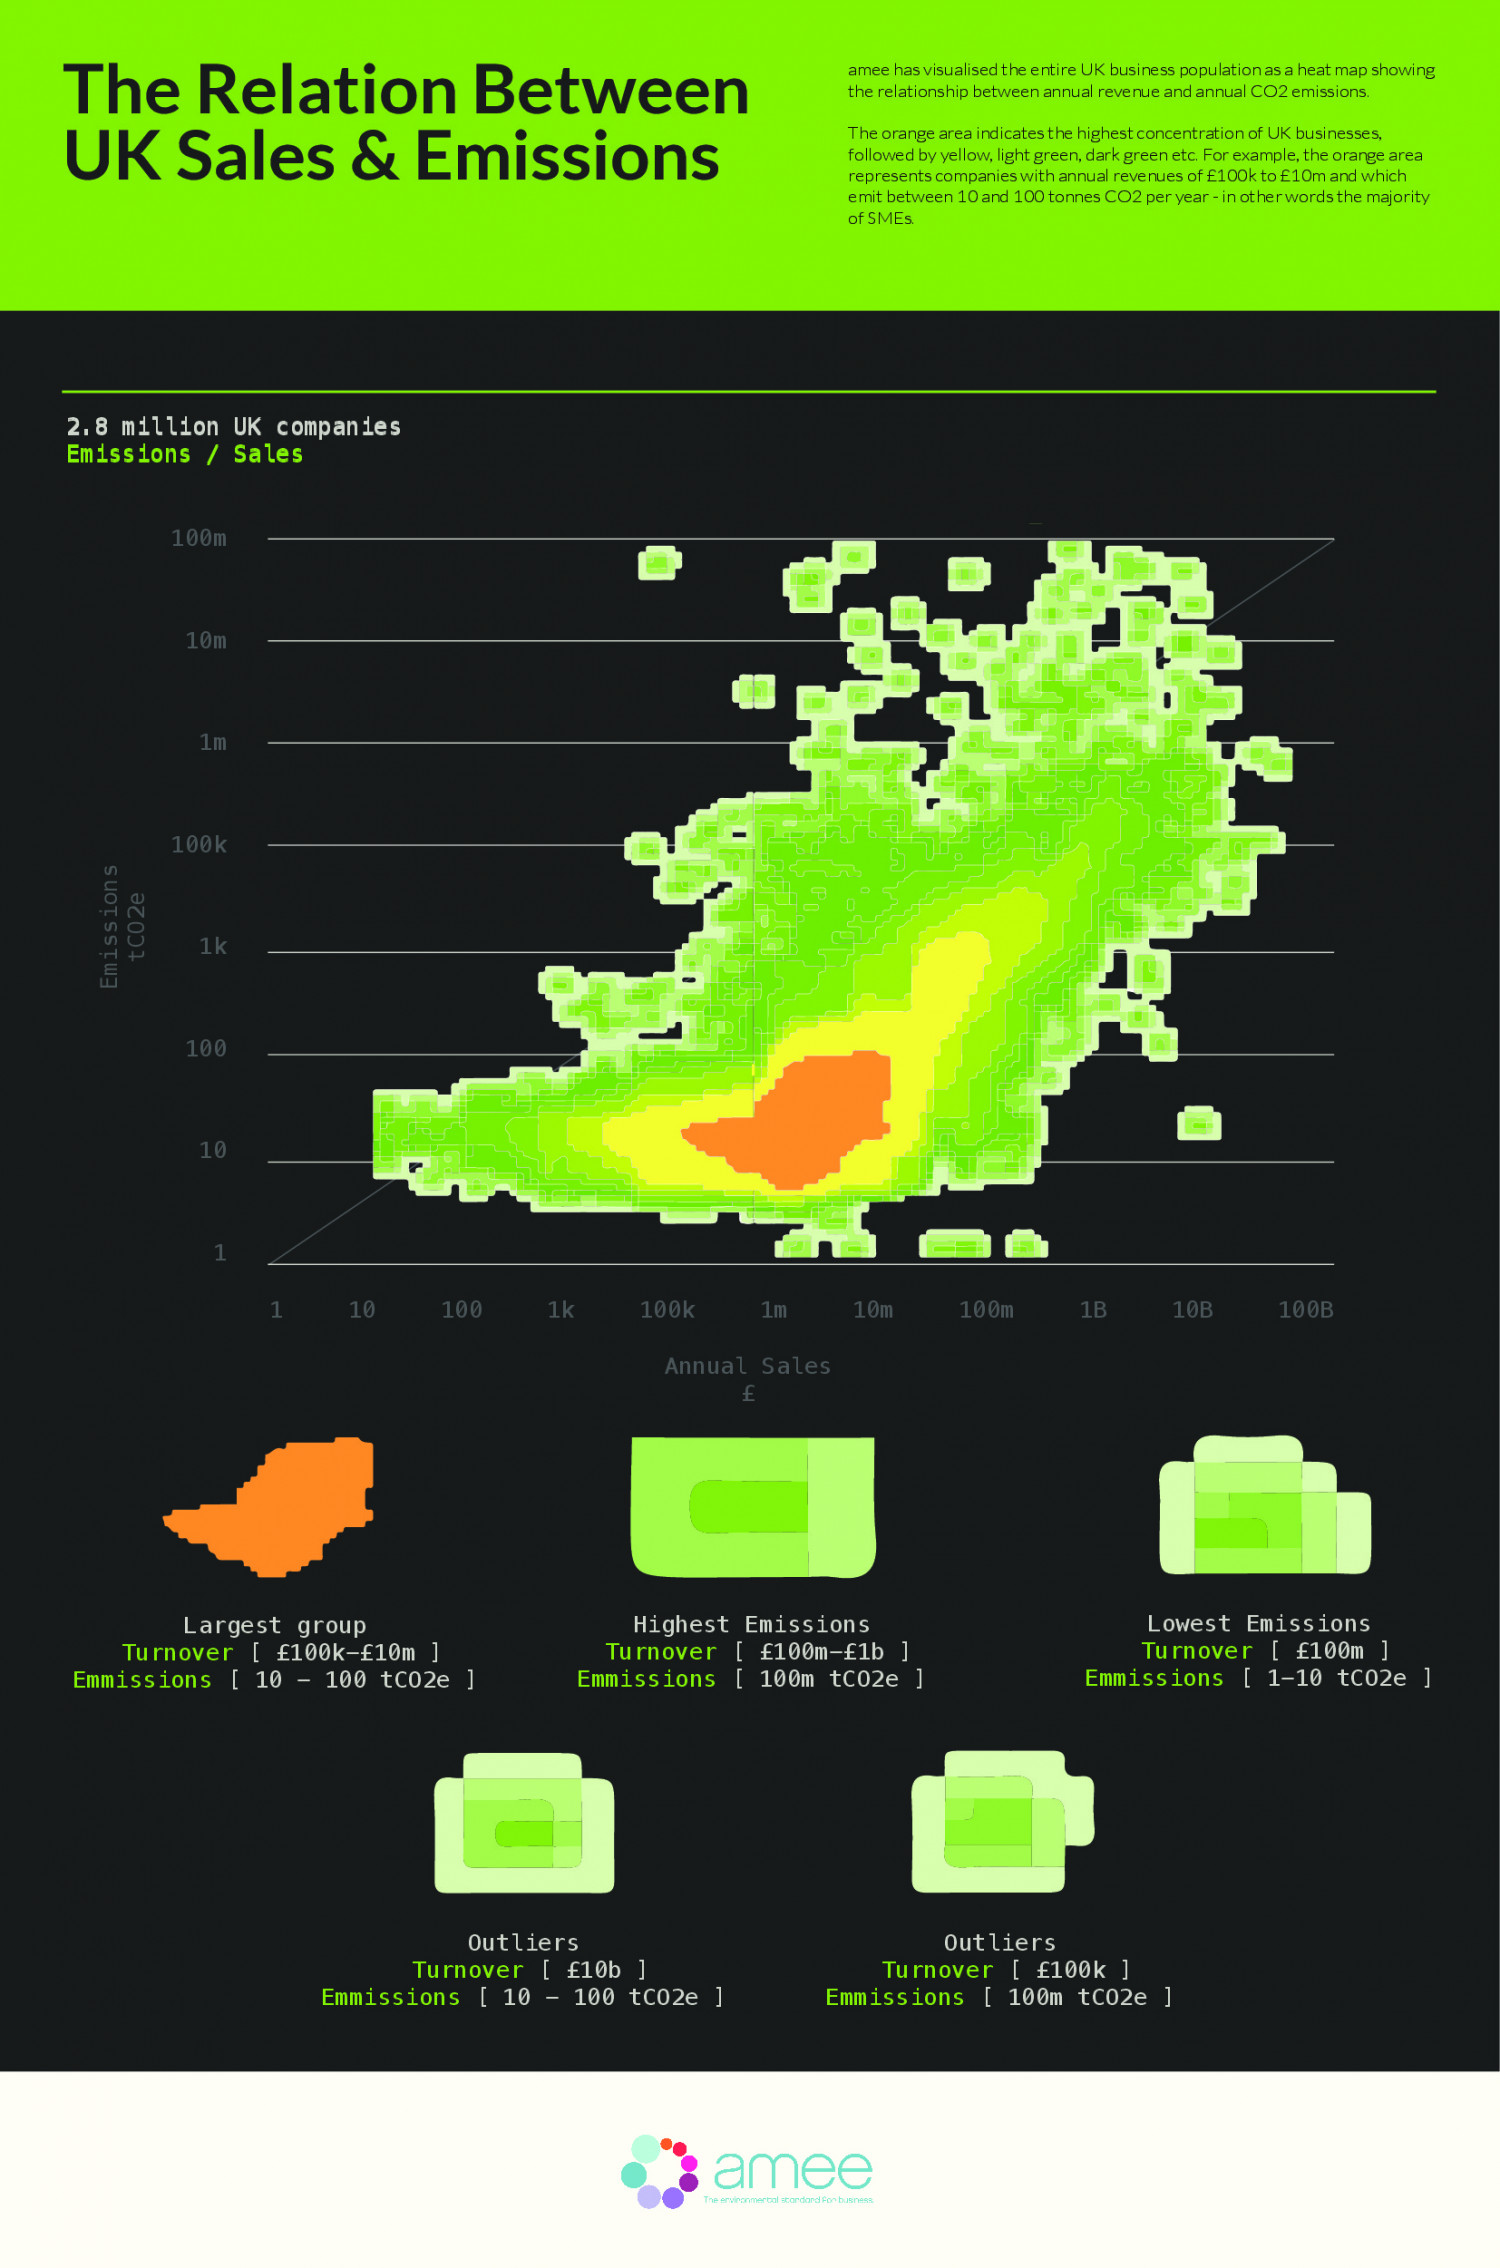 The relation between UK Sales & Emissions Infographic